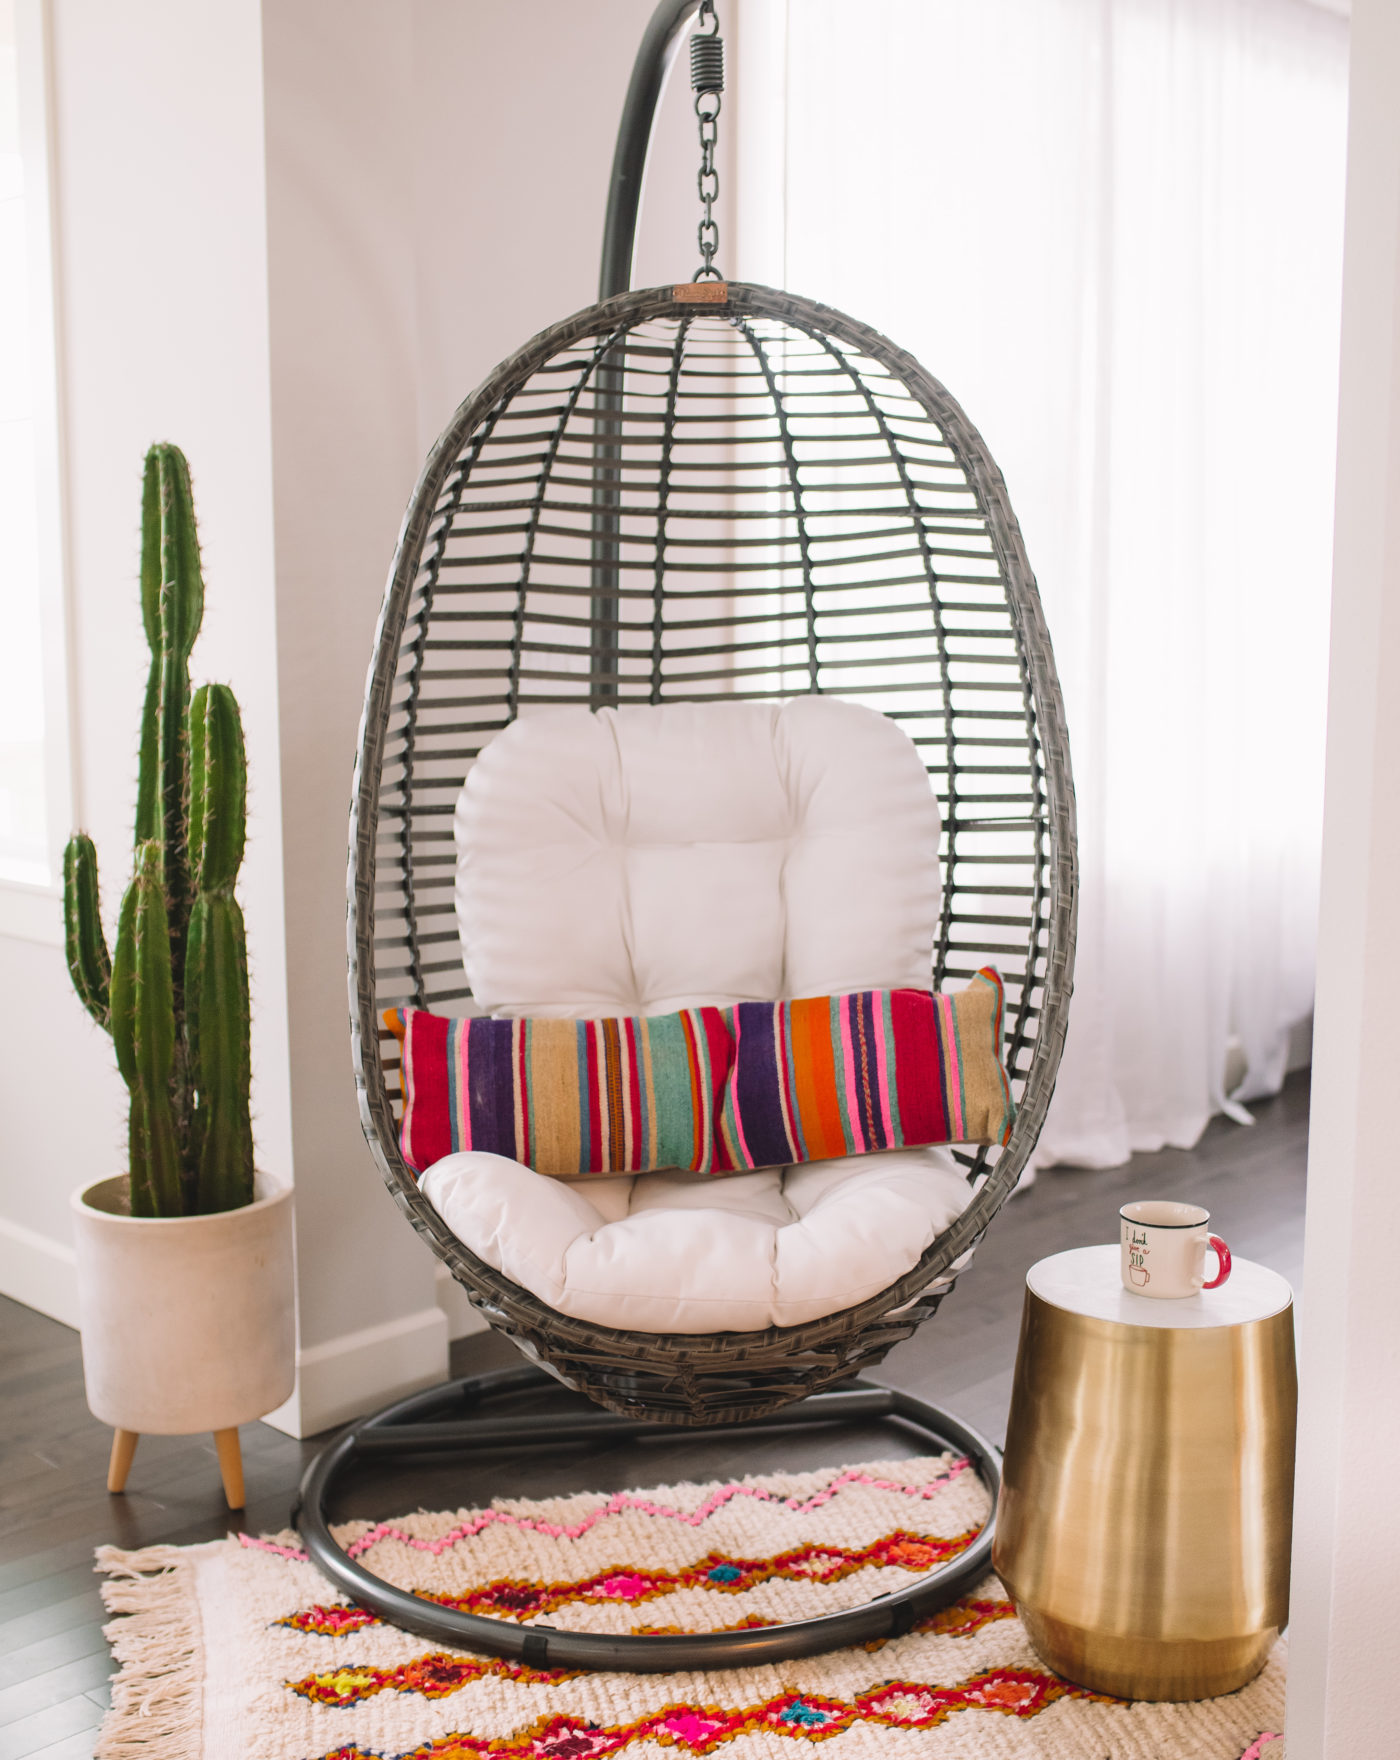 039ba348b6352 Swing Chair with Stand Home Decor Ideas GypsyTan Home